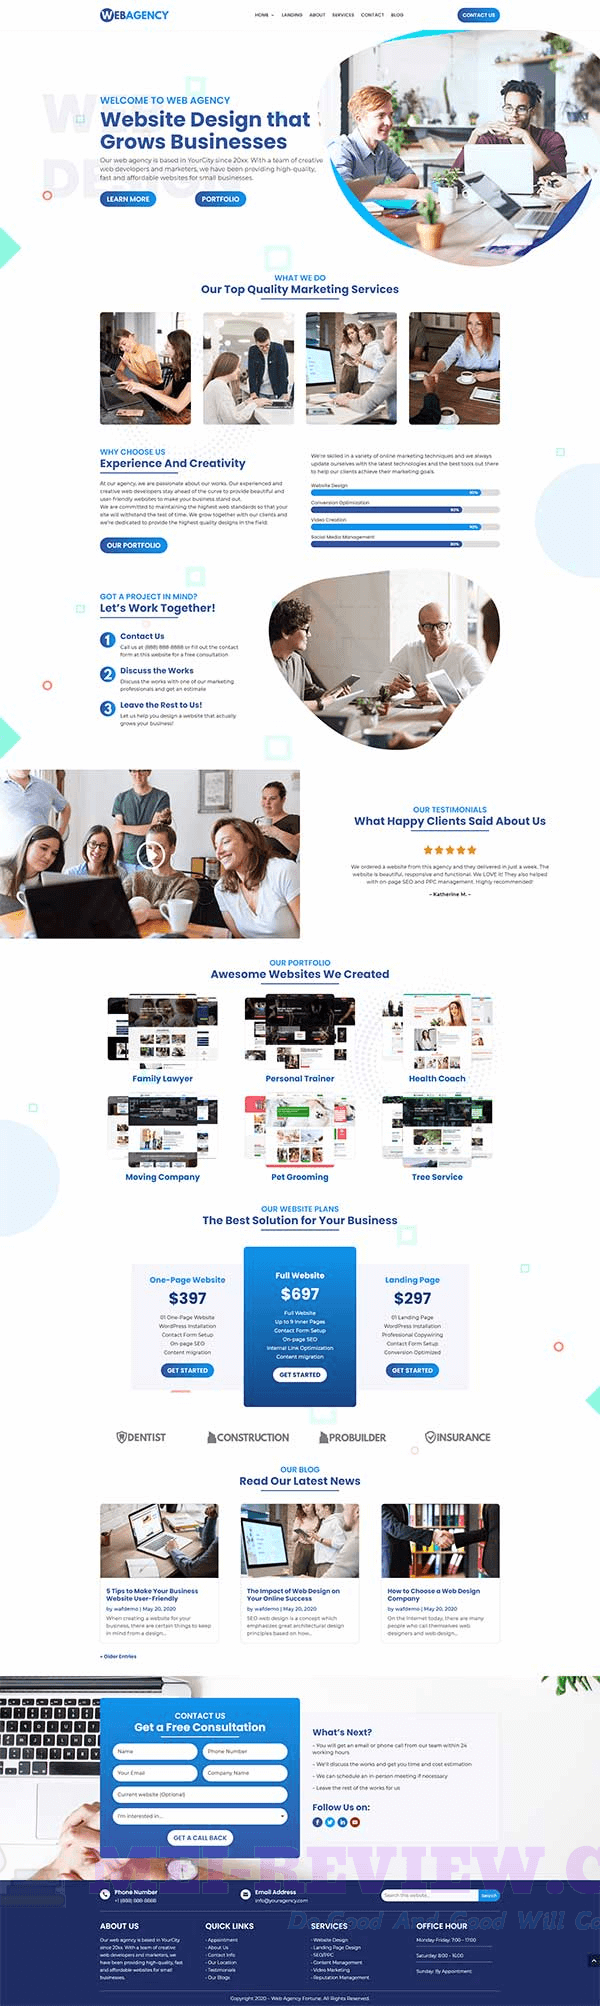 Web-Agency-Fortune-Vol-4-feature-5-Your-Agency-Website